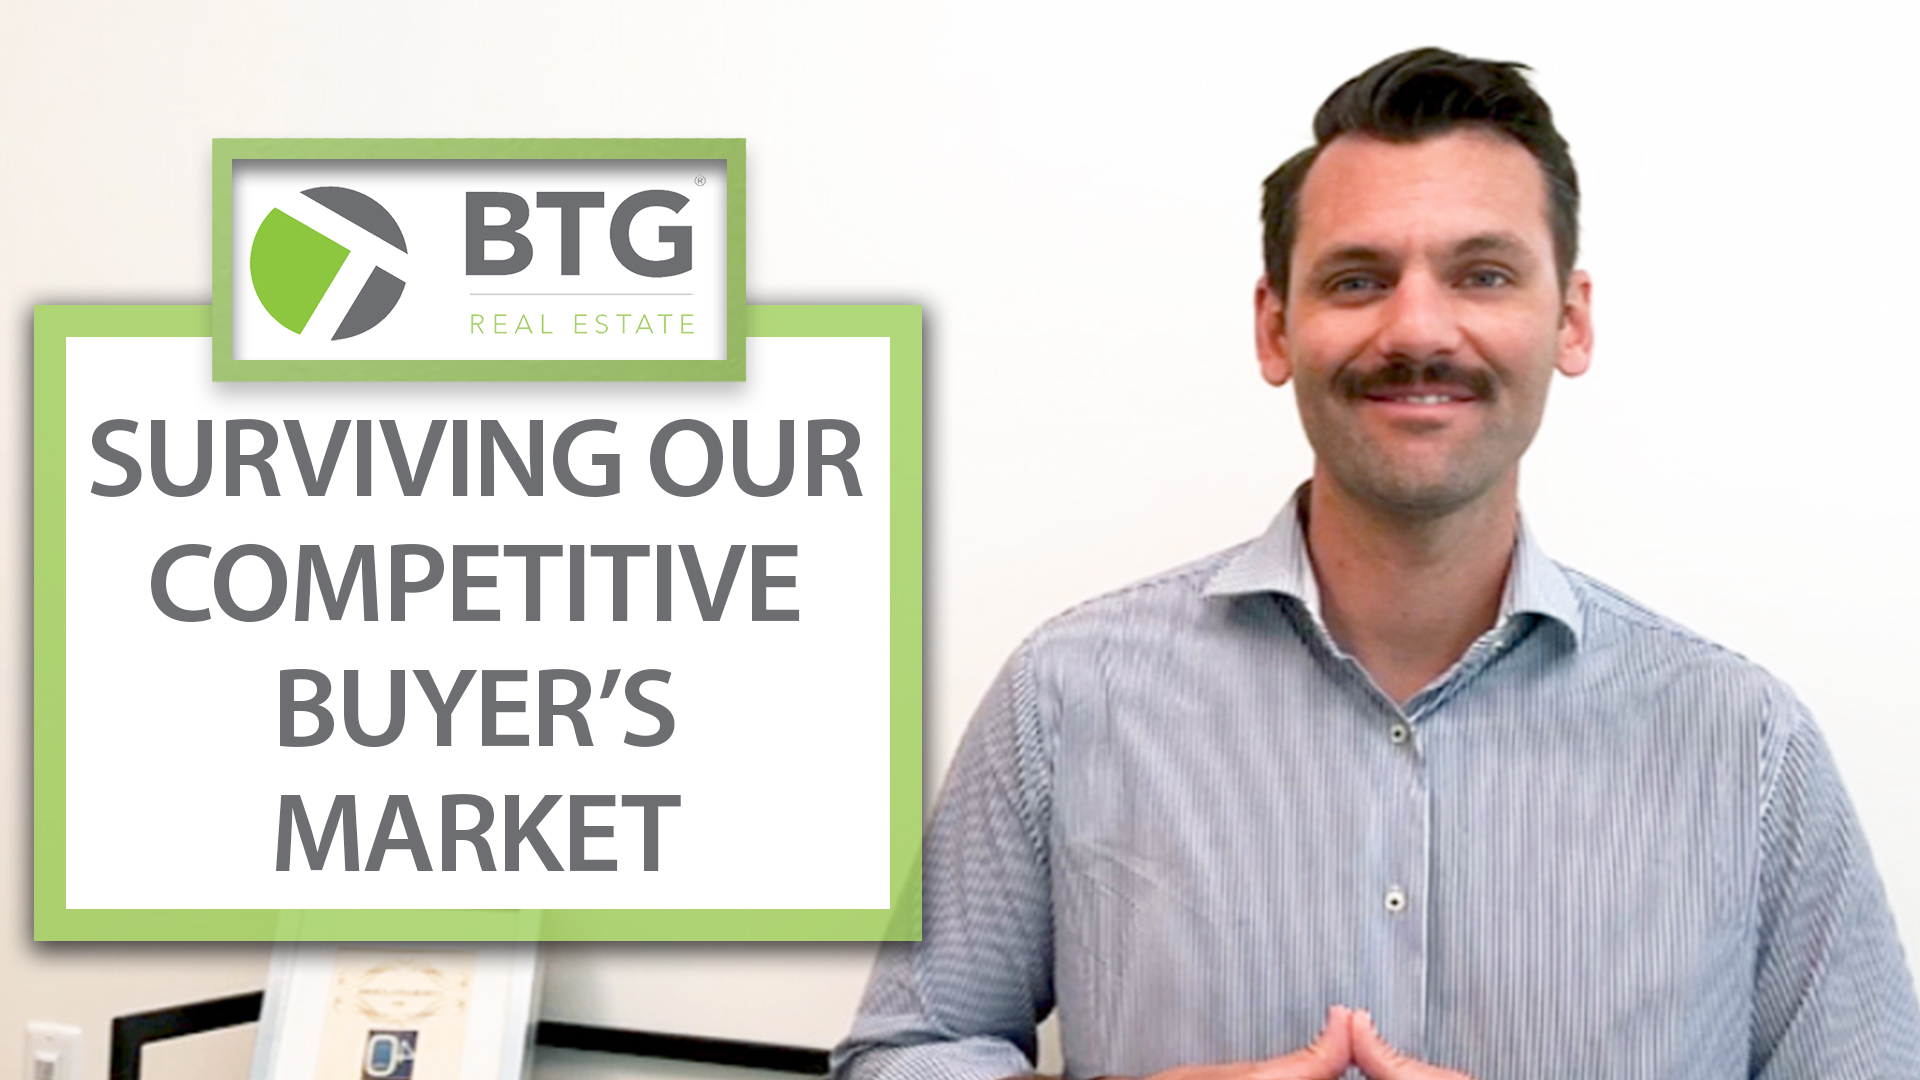 What 3 Tips Do Buyers Need to Remember to Survive in Our Market?